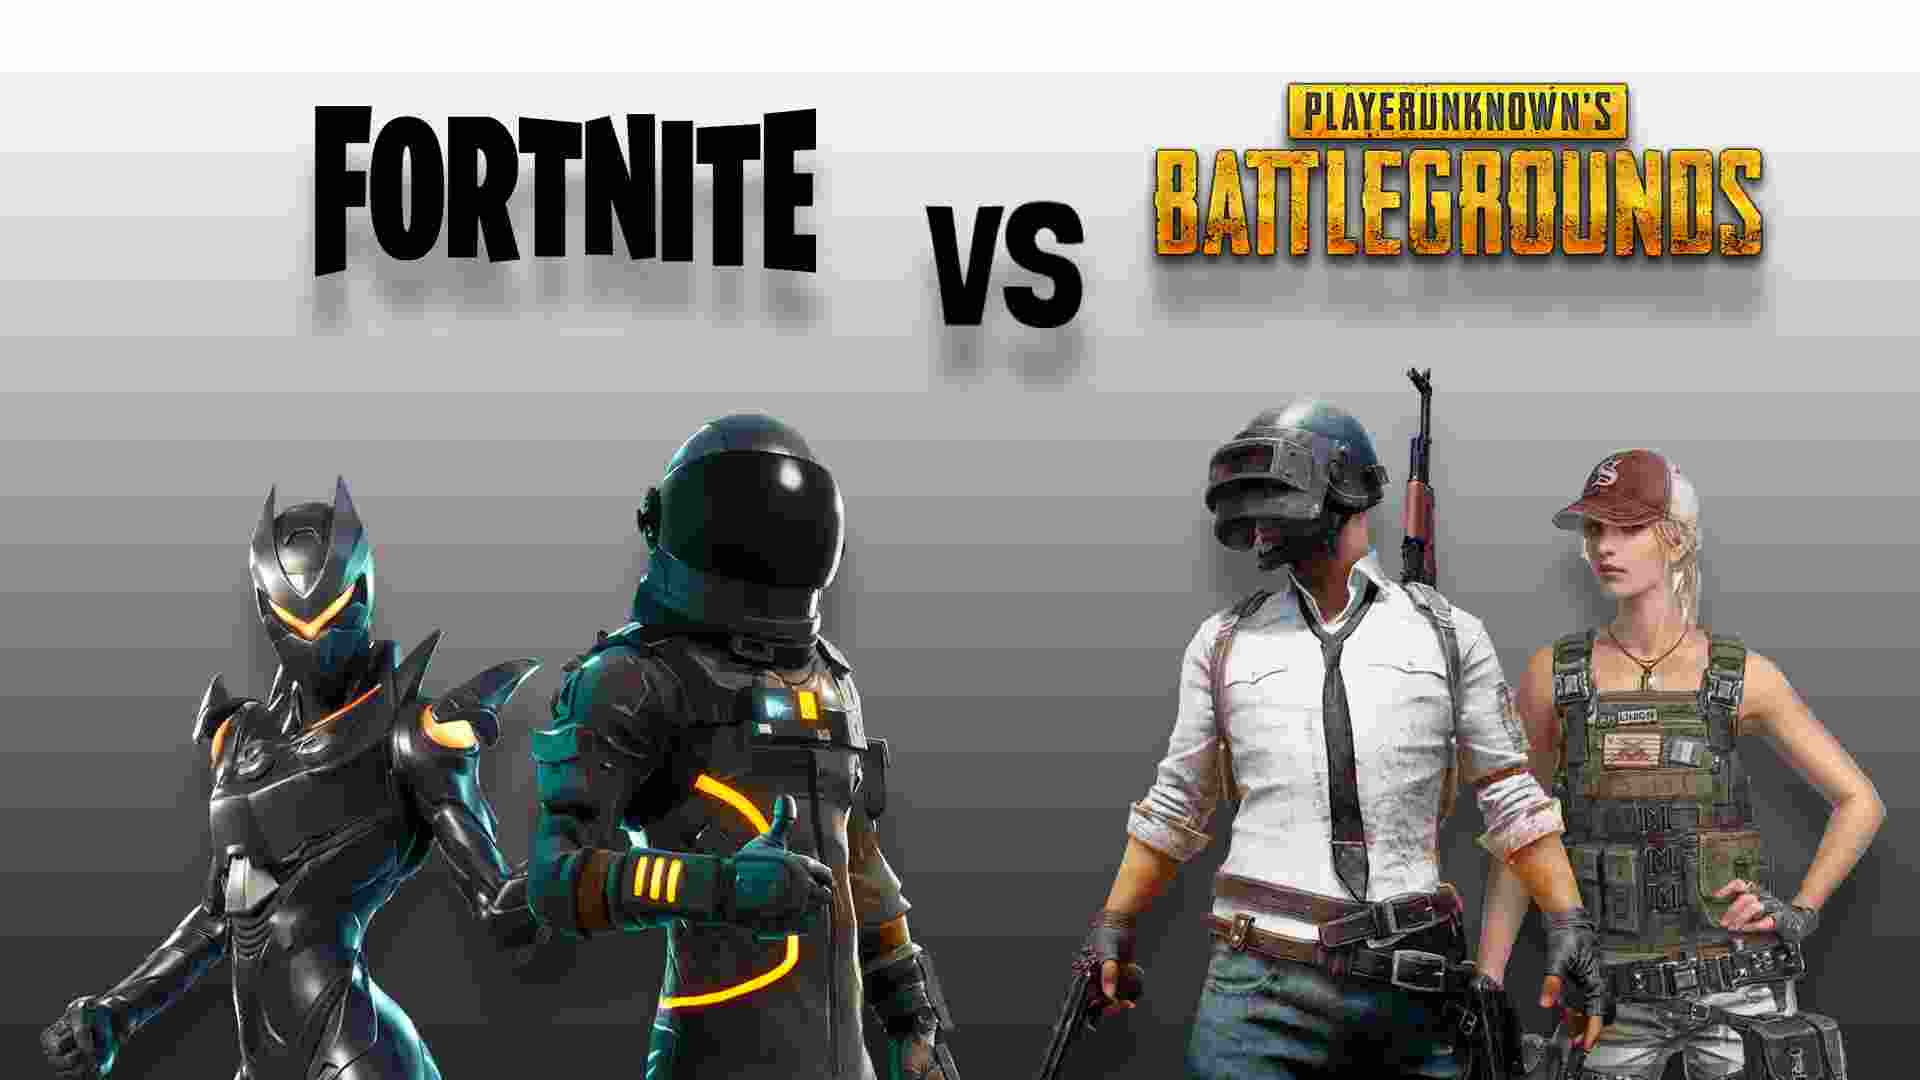 Pubg vs Fortnite: Which One Is Best To Play?